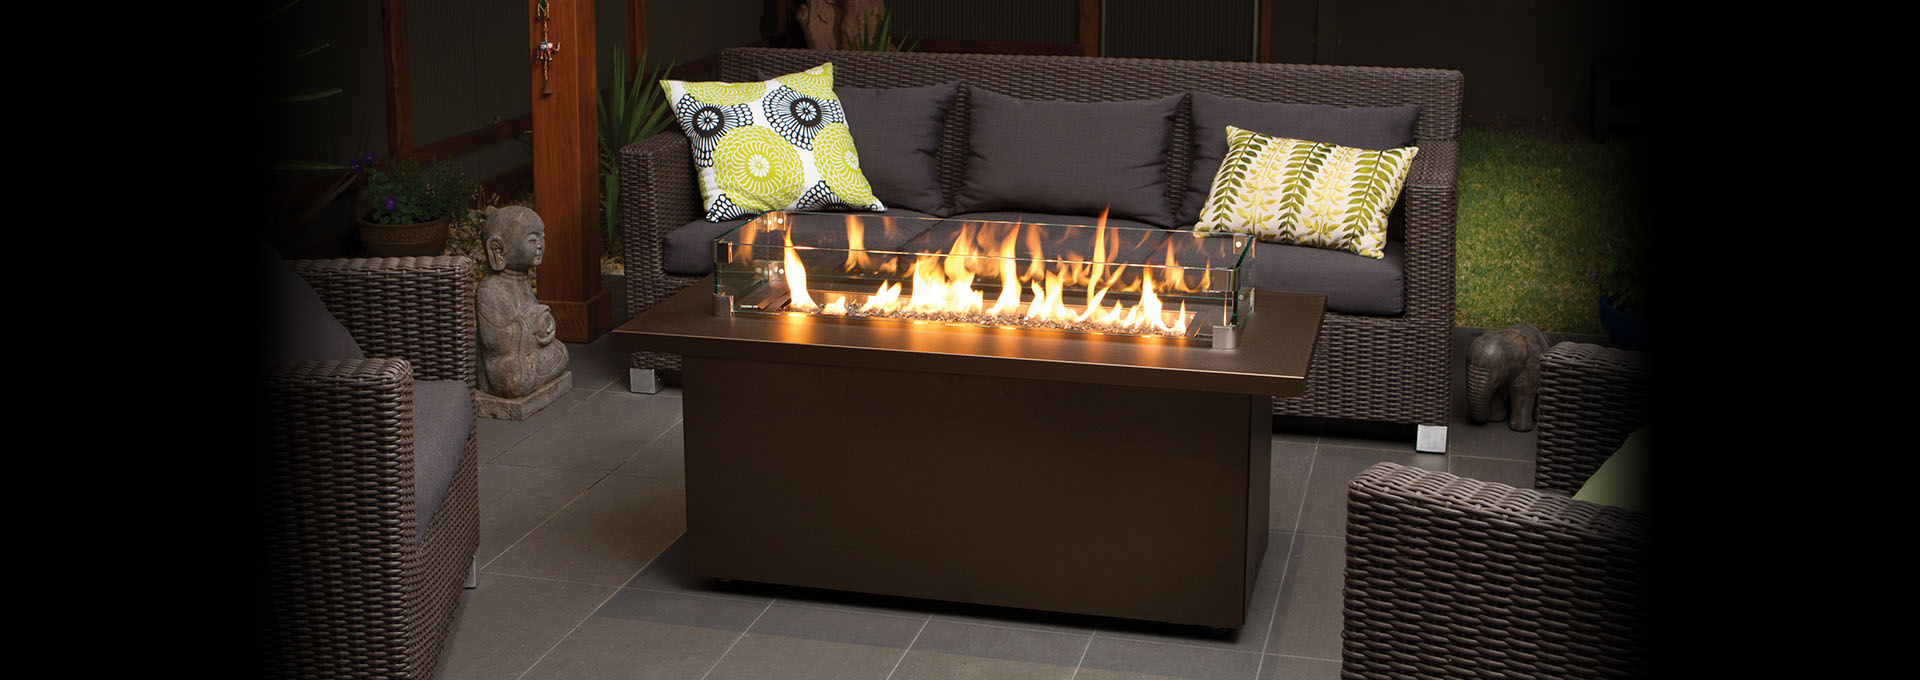 Indoor Fireplace Coffee Table Awesome Broadway With Indoor Fireplace Coffee Table Gallery Of